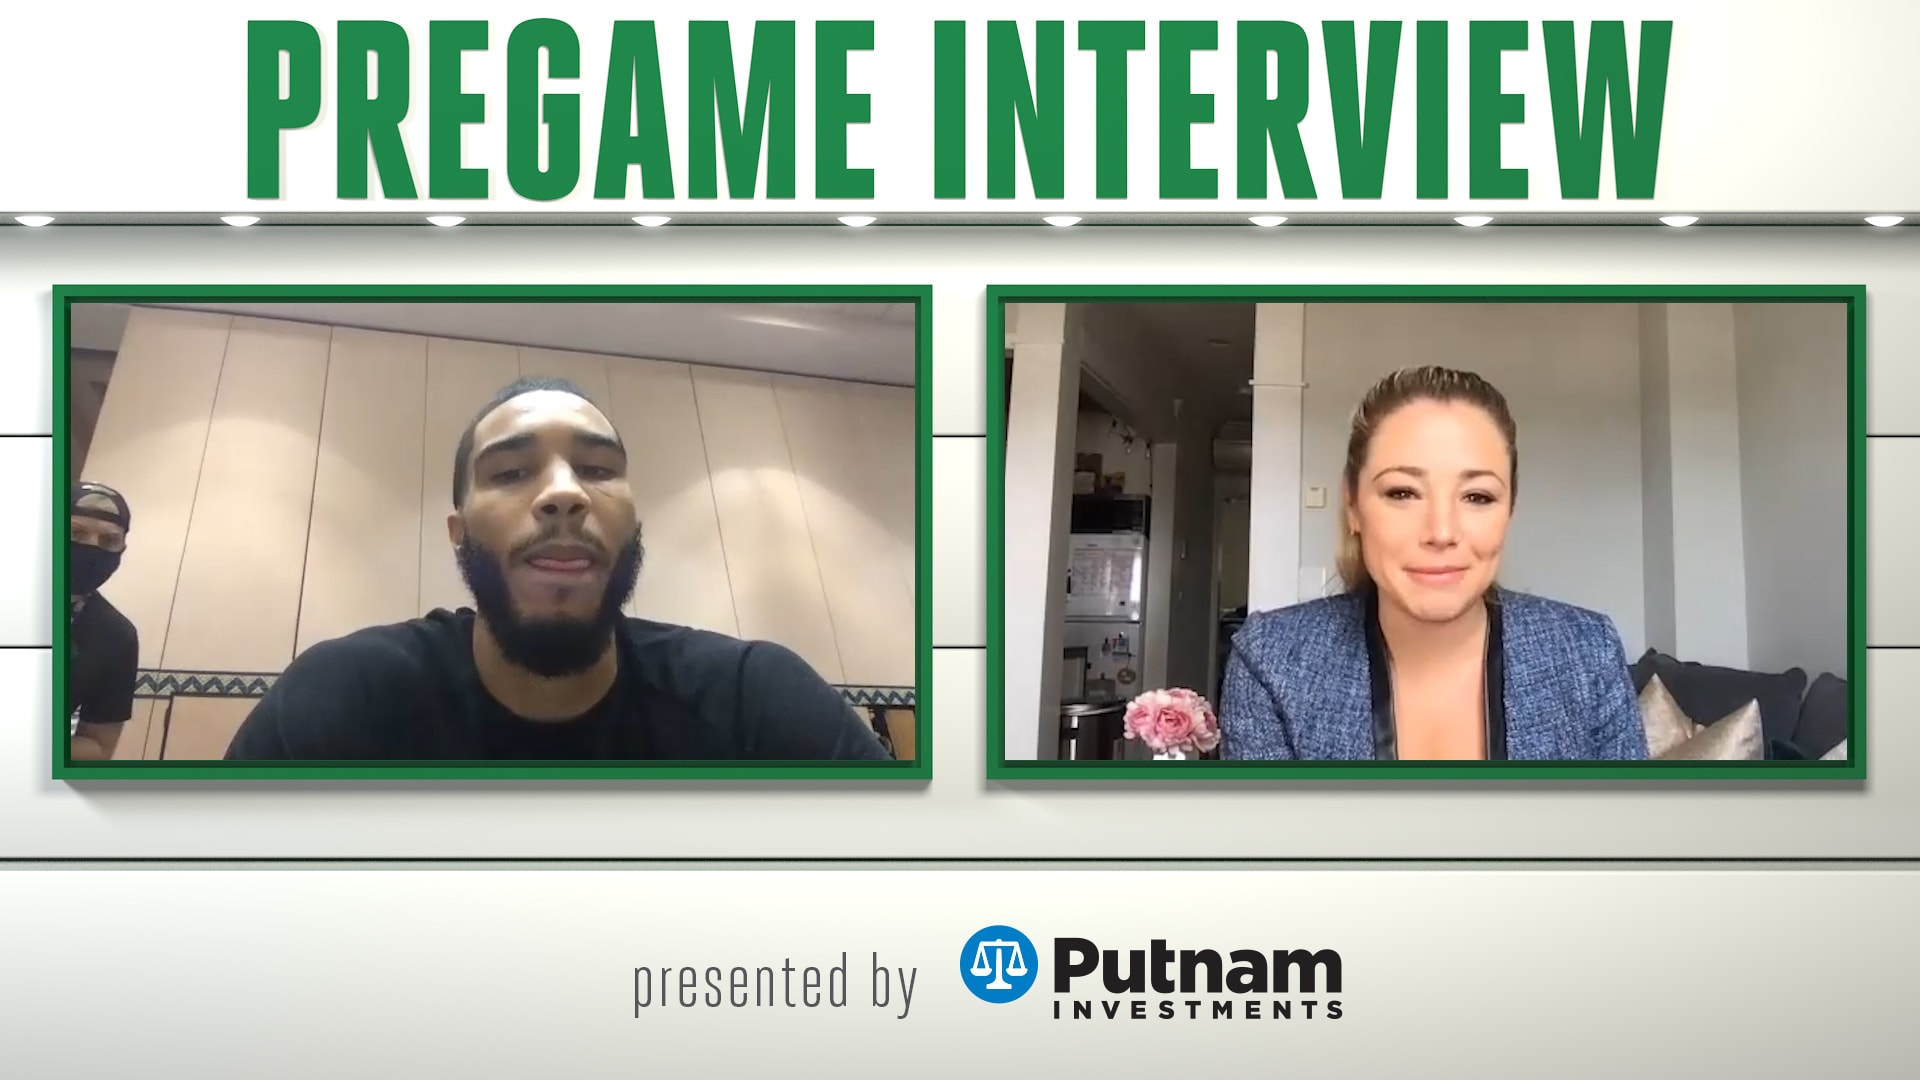 9/17 Putnam Pregame Interview: 'Stay Engaged'